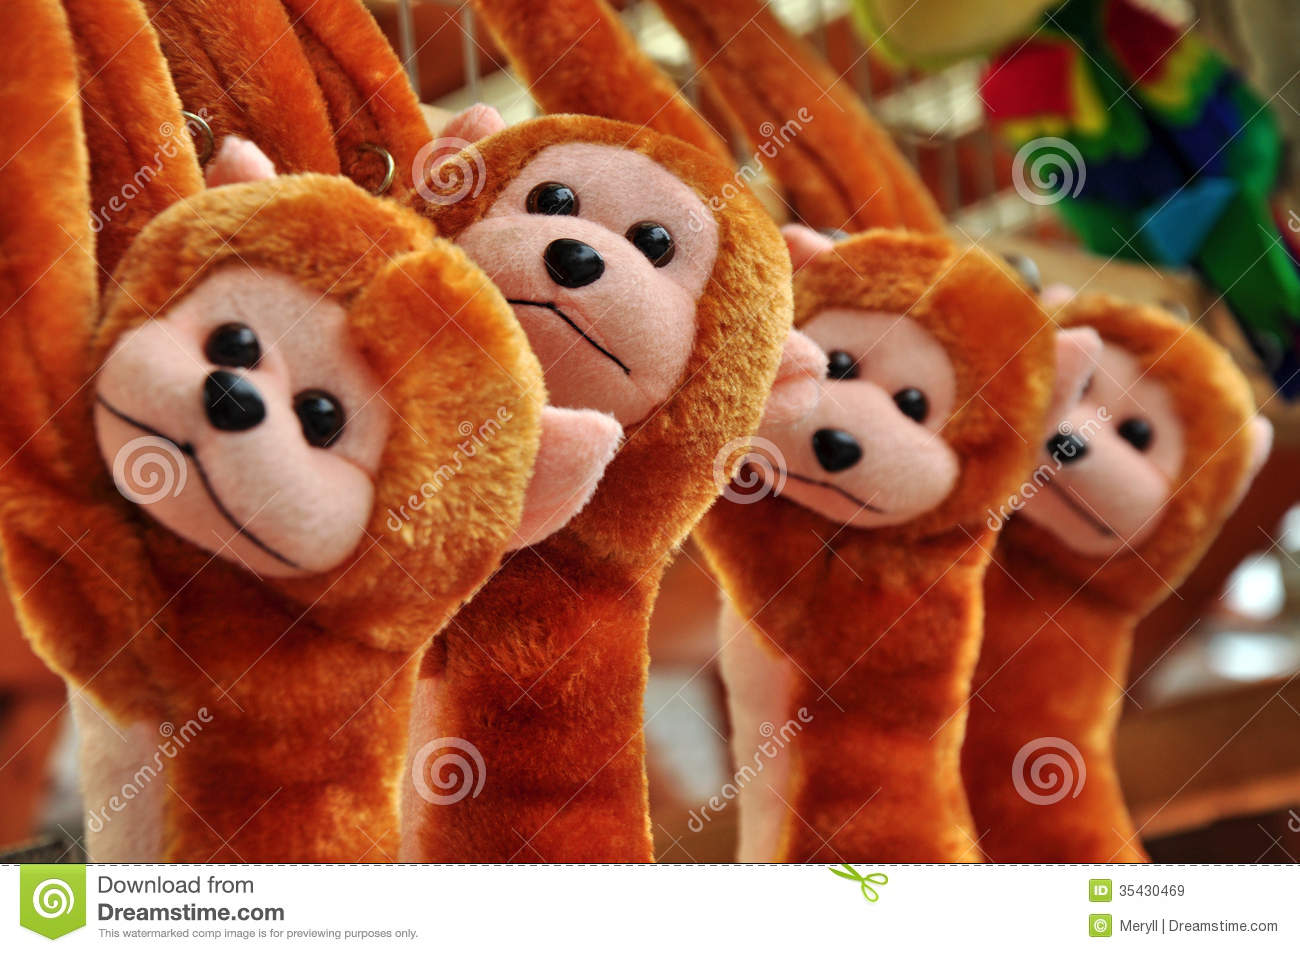 Toys On Sale Stock Image Image Of Background Cute Faces 35430469